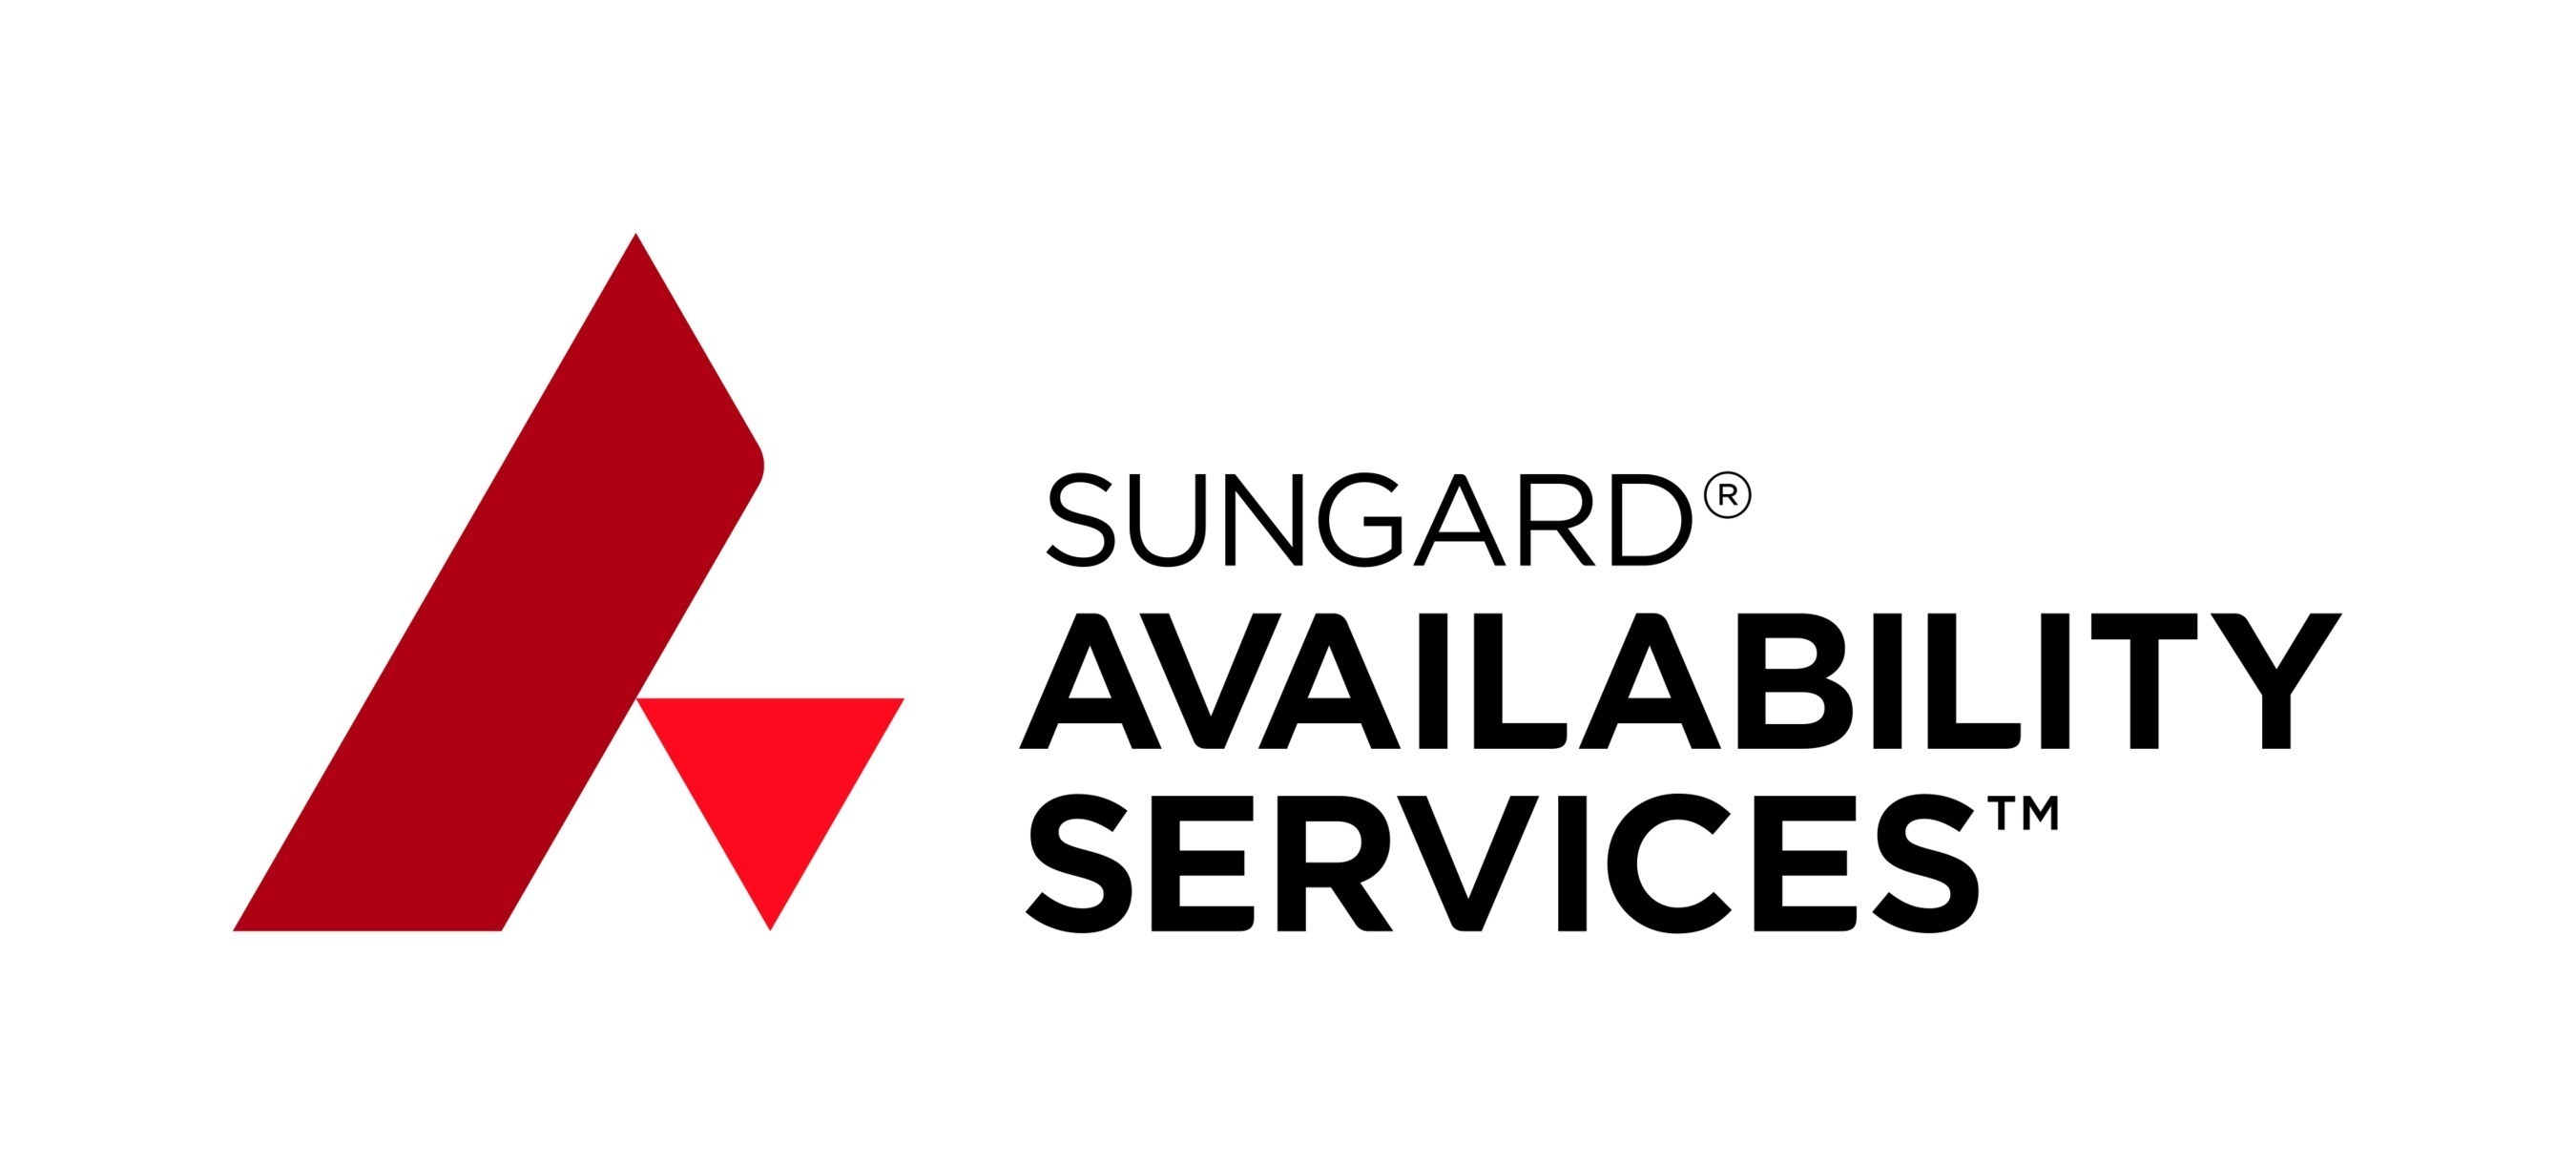 Sungard Availability Services Customers Can Access AT&T NetBond' for Fast, Highly Secure and Flexible Network Connections